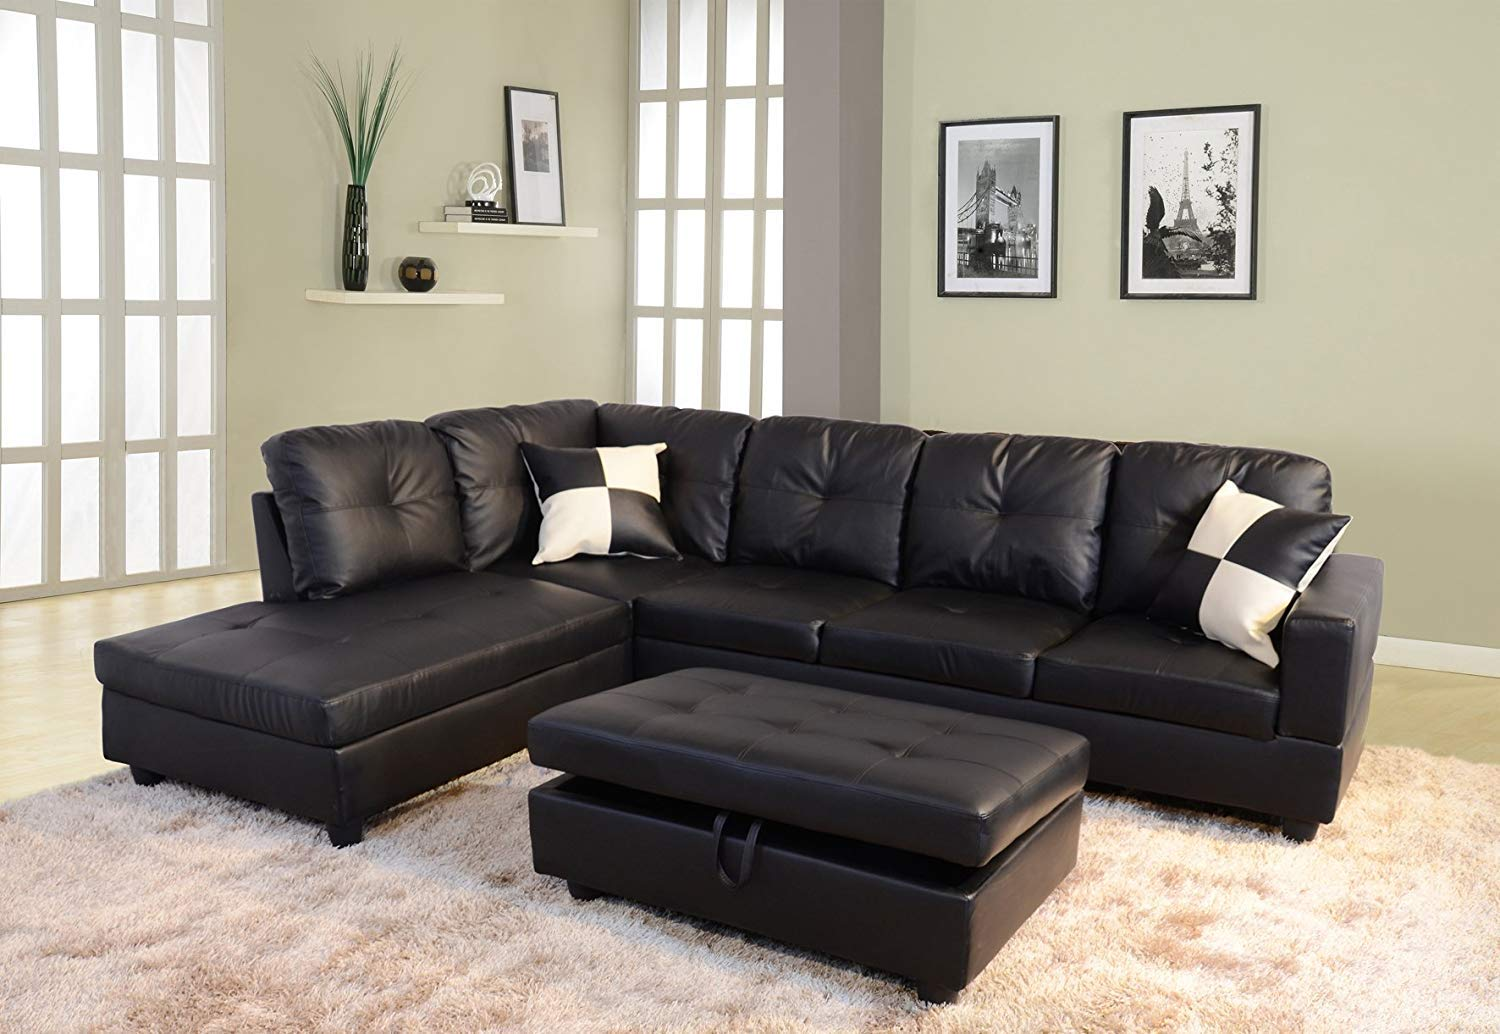 Flashbuy Fine Furniture Sectional Sofa Set Luxurious Faux Leather 3 Pieces with Ottoman (091A) by FlashBuy